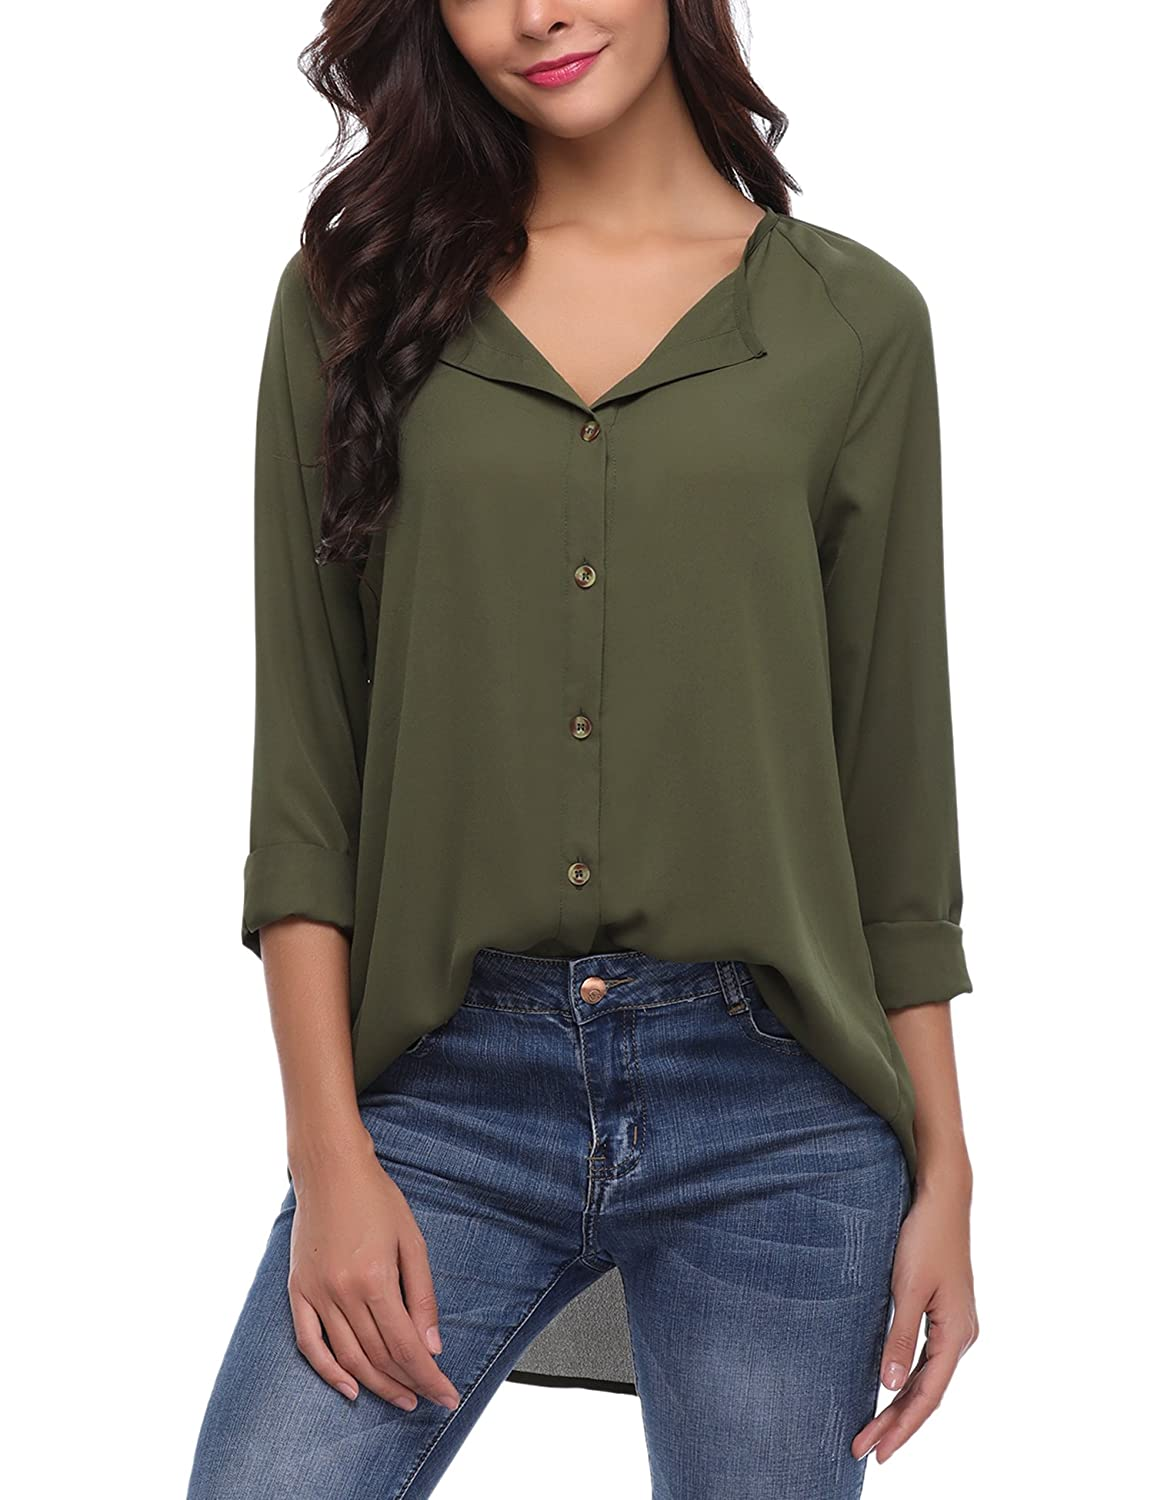 I Closam Women Chiffon Casual Loose V Neck Long Sleeve Button Down Shirt Blouse Tops by I Closam